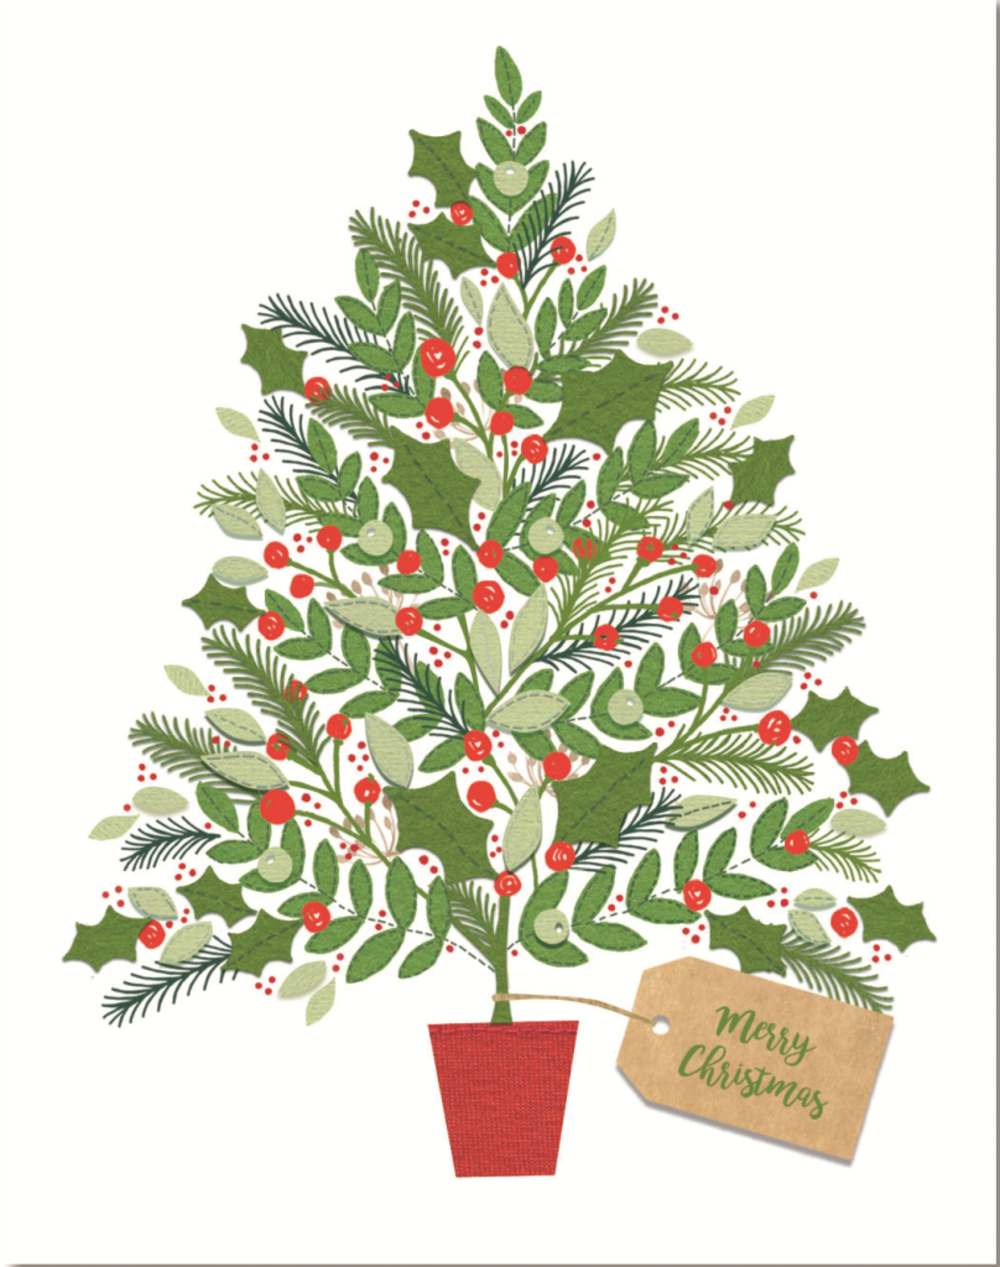 Pack of 10 Alzheimer's Society Charity Christmas Cards